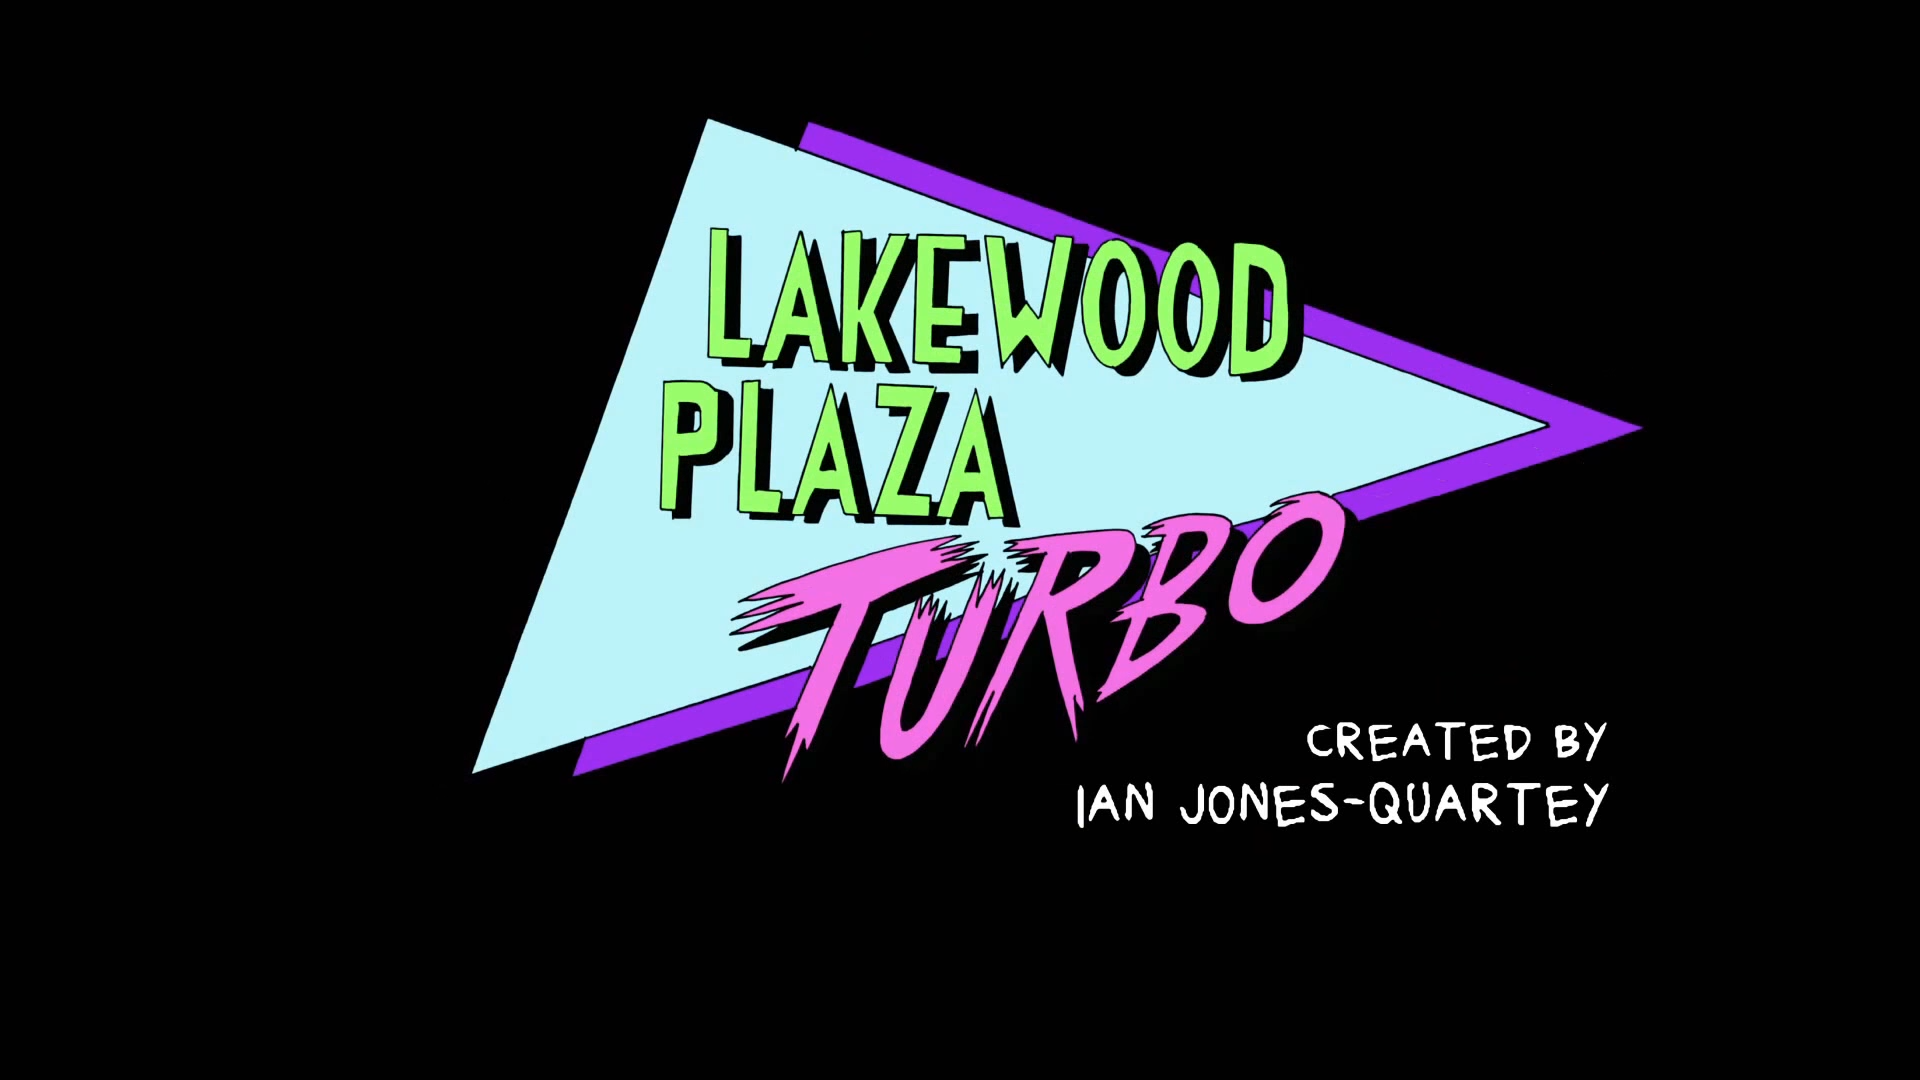 Lakewood Plaza Turbo (pilot)